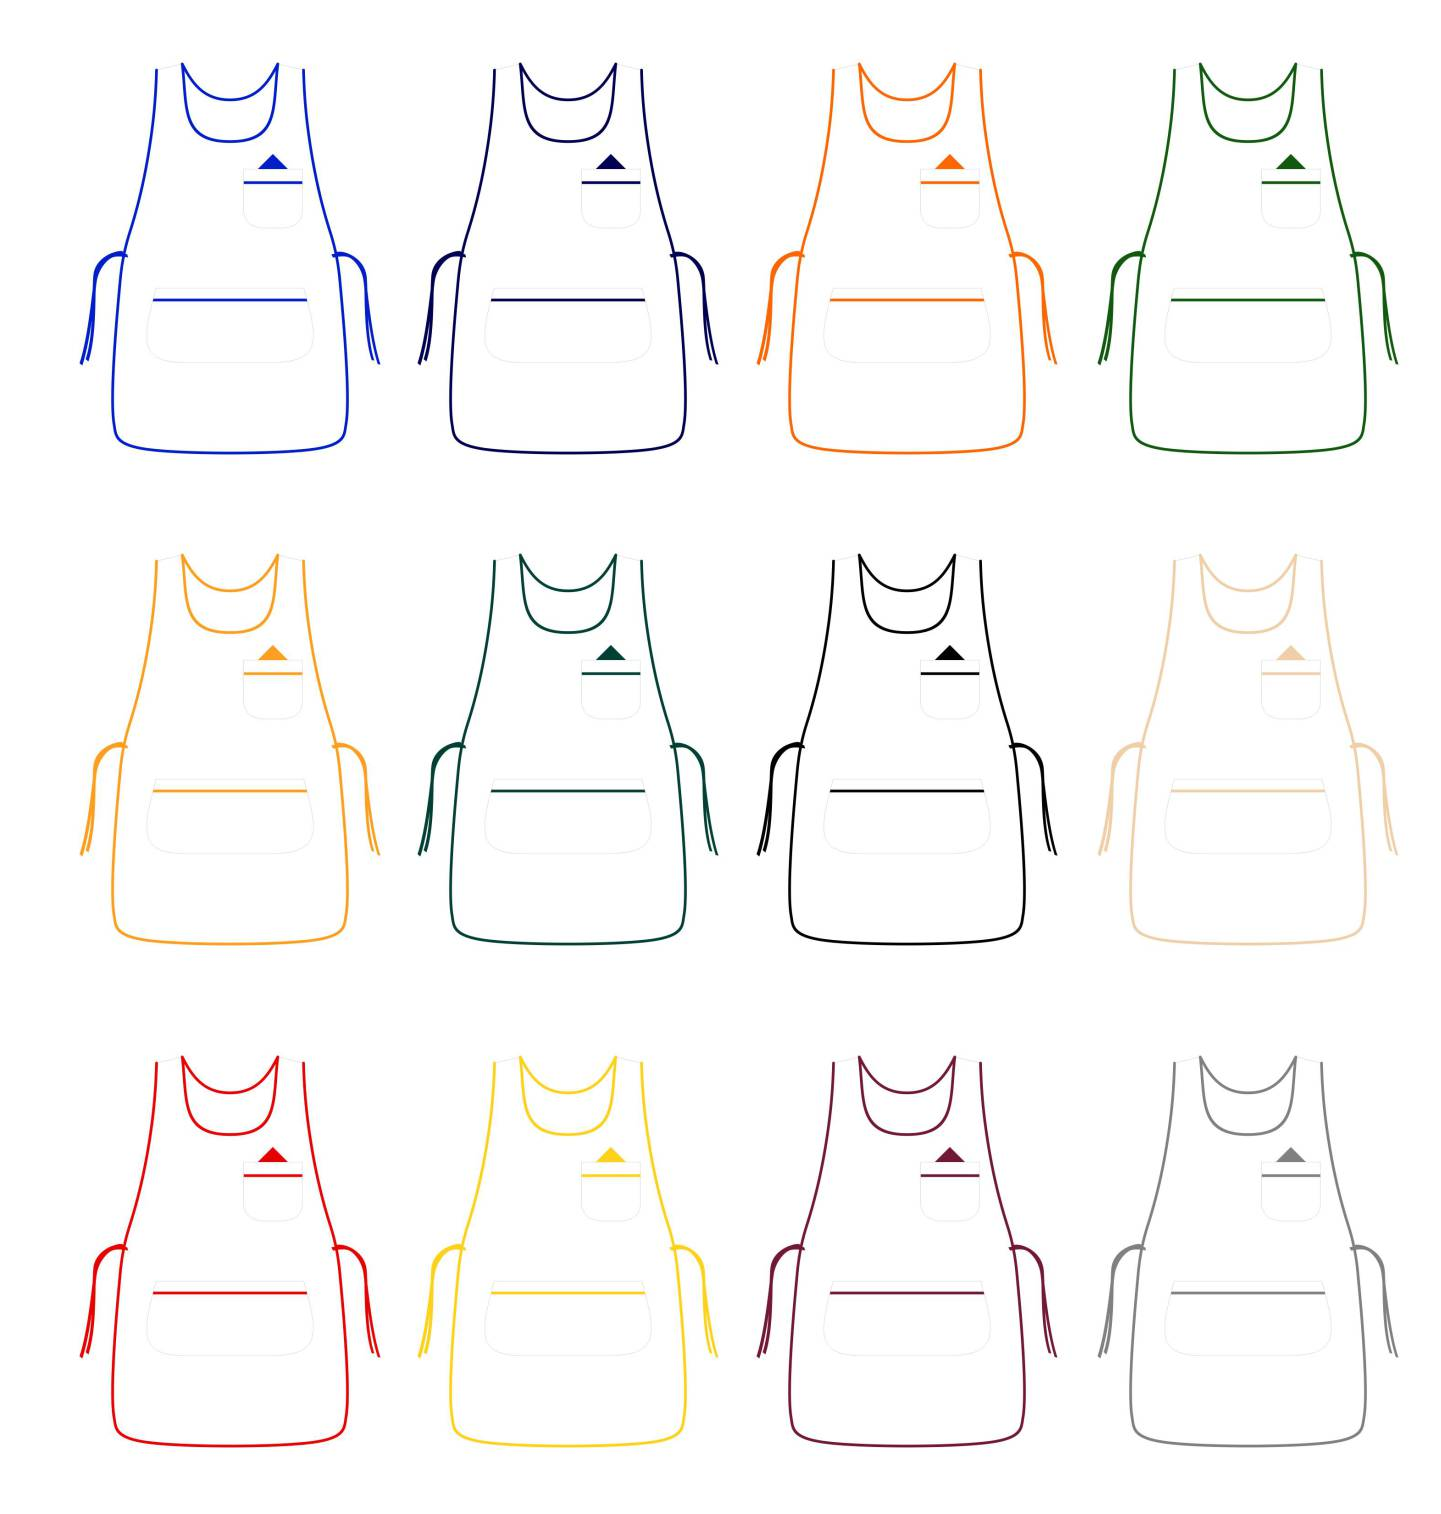 White tabard apron - White Tabard Apron With Colored Pipping Zoom Icon